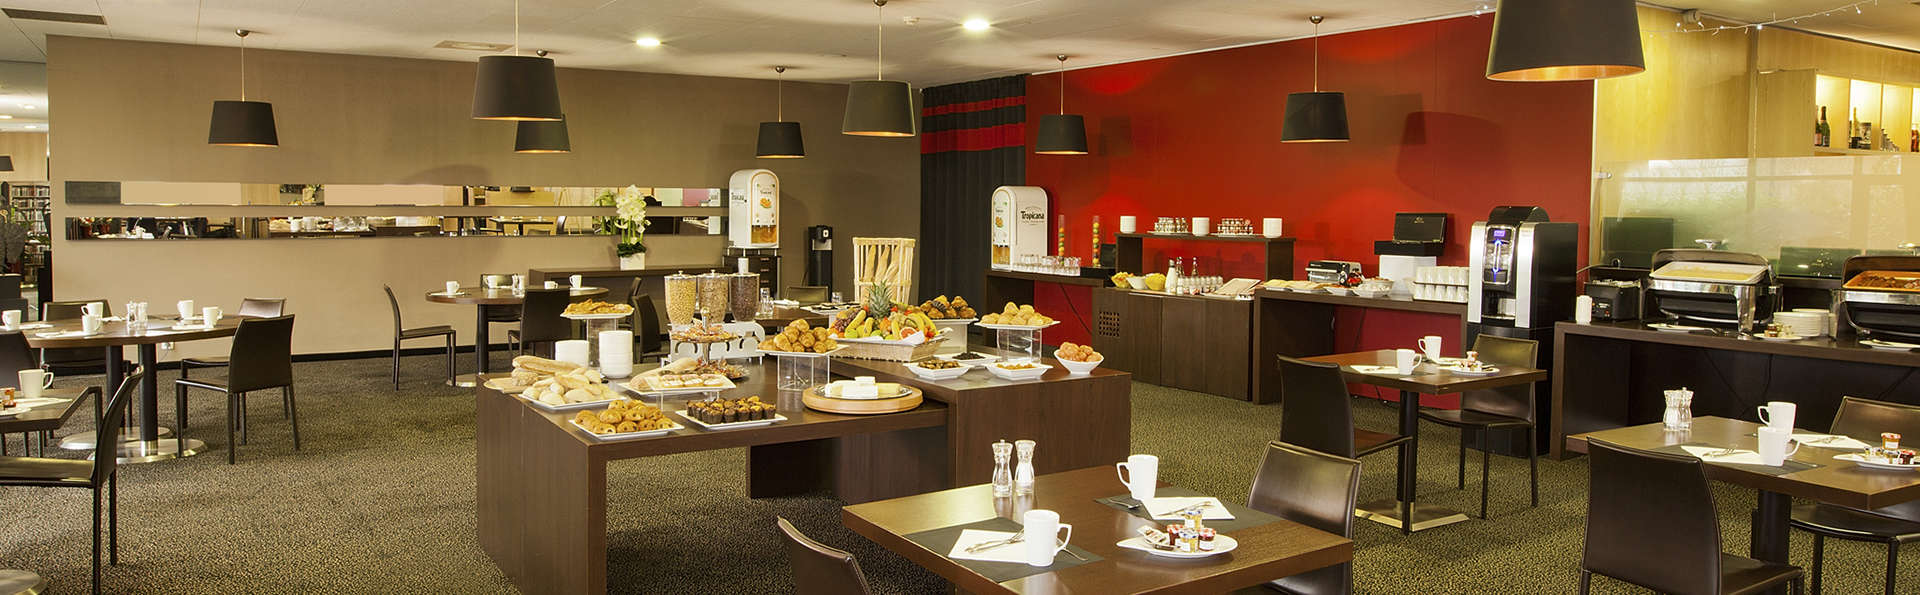 Residhome Suites Paris Sénart - edit_breakfast.jpg